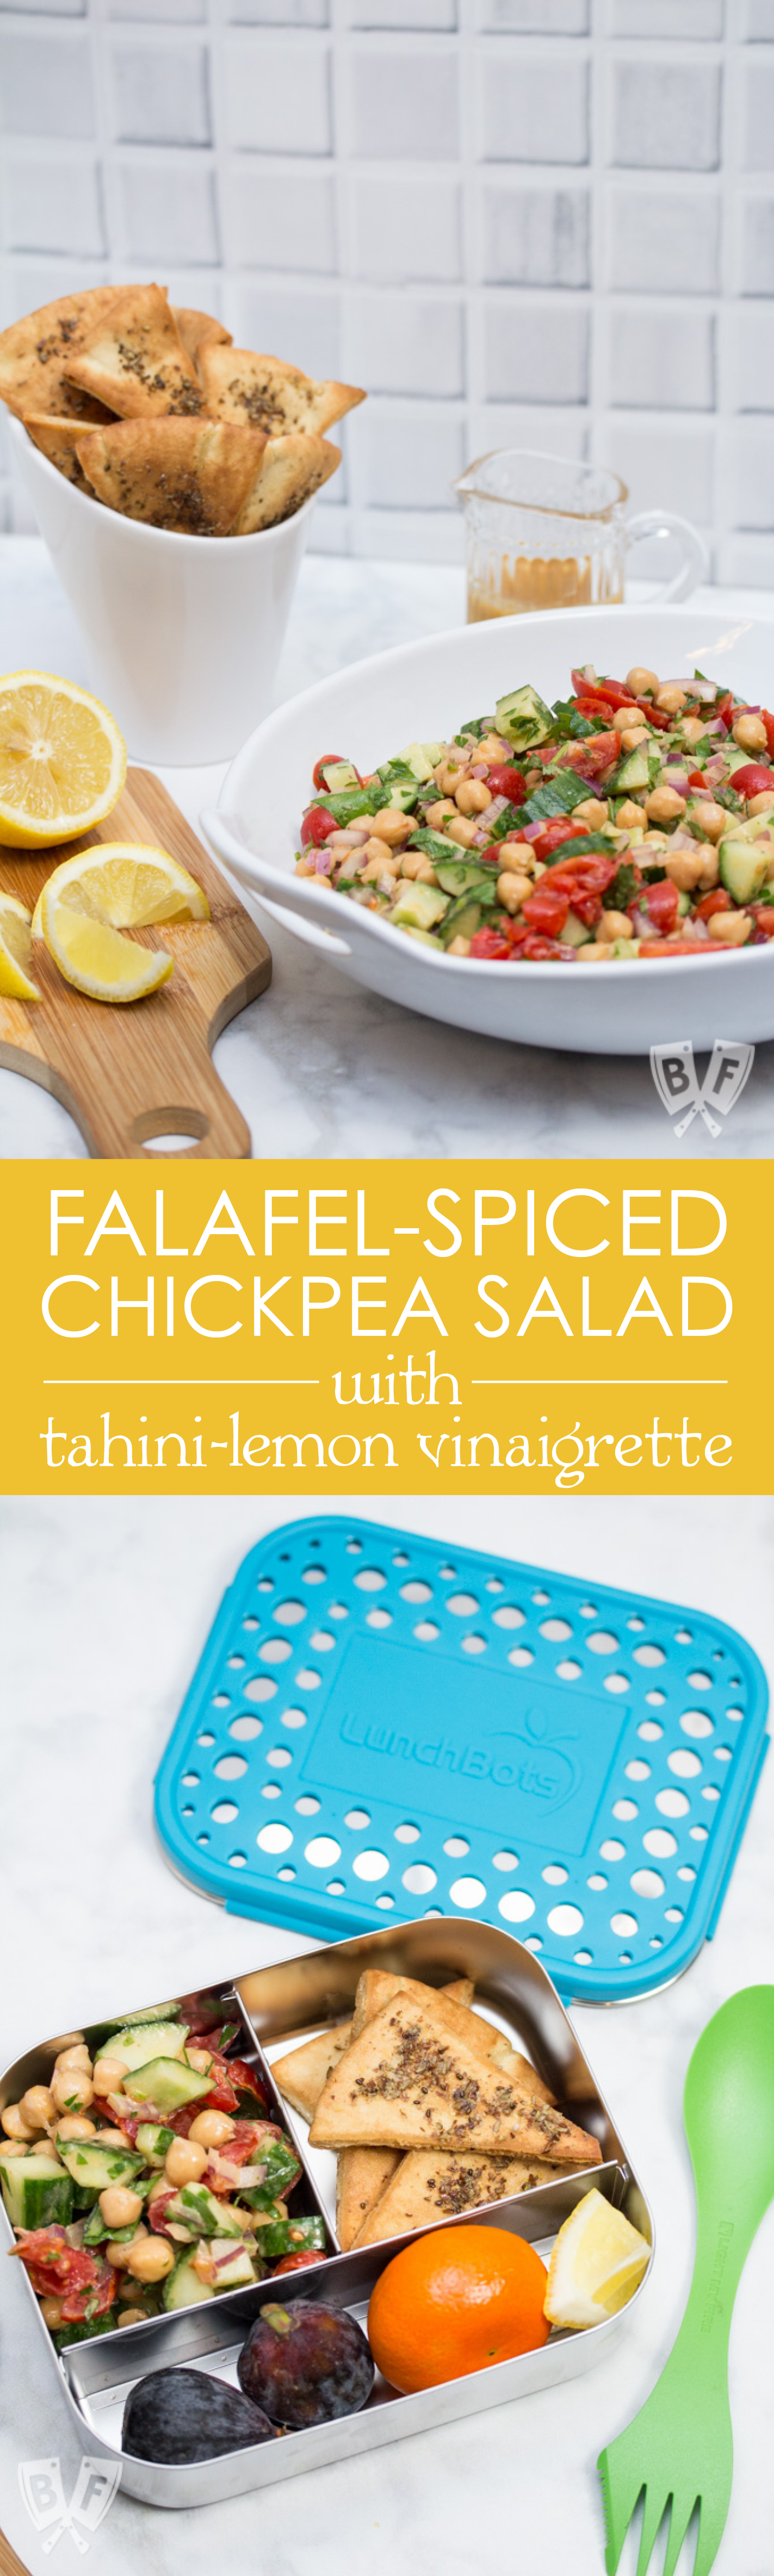 Falafel-Spiced Chickpea Salad with Tahini-Lemon Vinaigrette (#ad): This quick, simple Middle Eastern salad + homemade pita chips brings all the flavor of falafel in a fraction of the time - no deep frying required! #snackwithbarleans